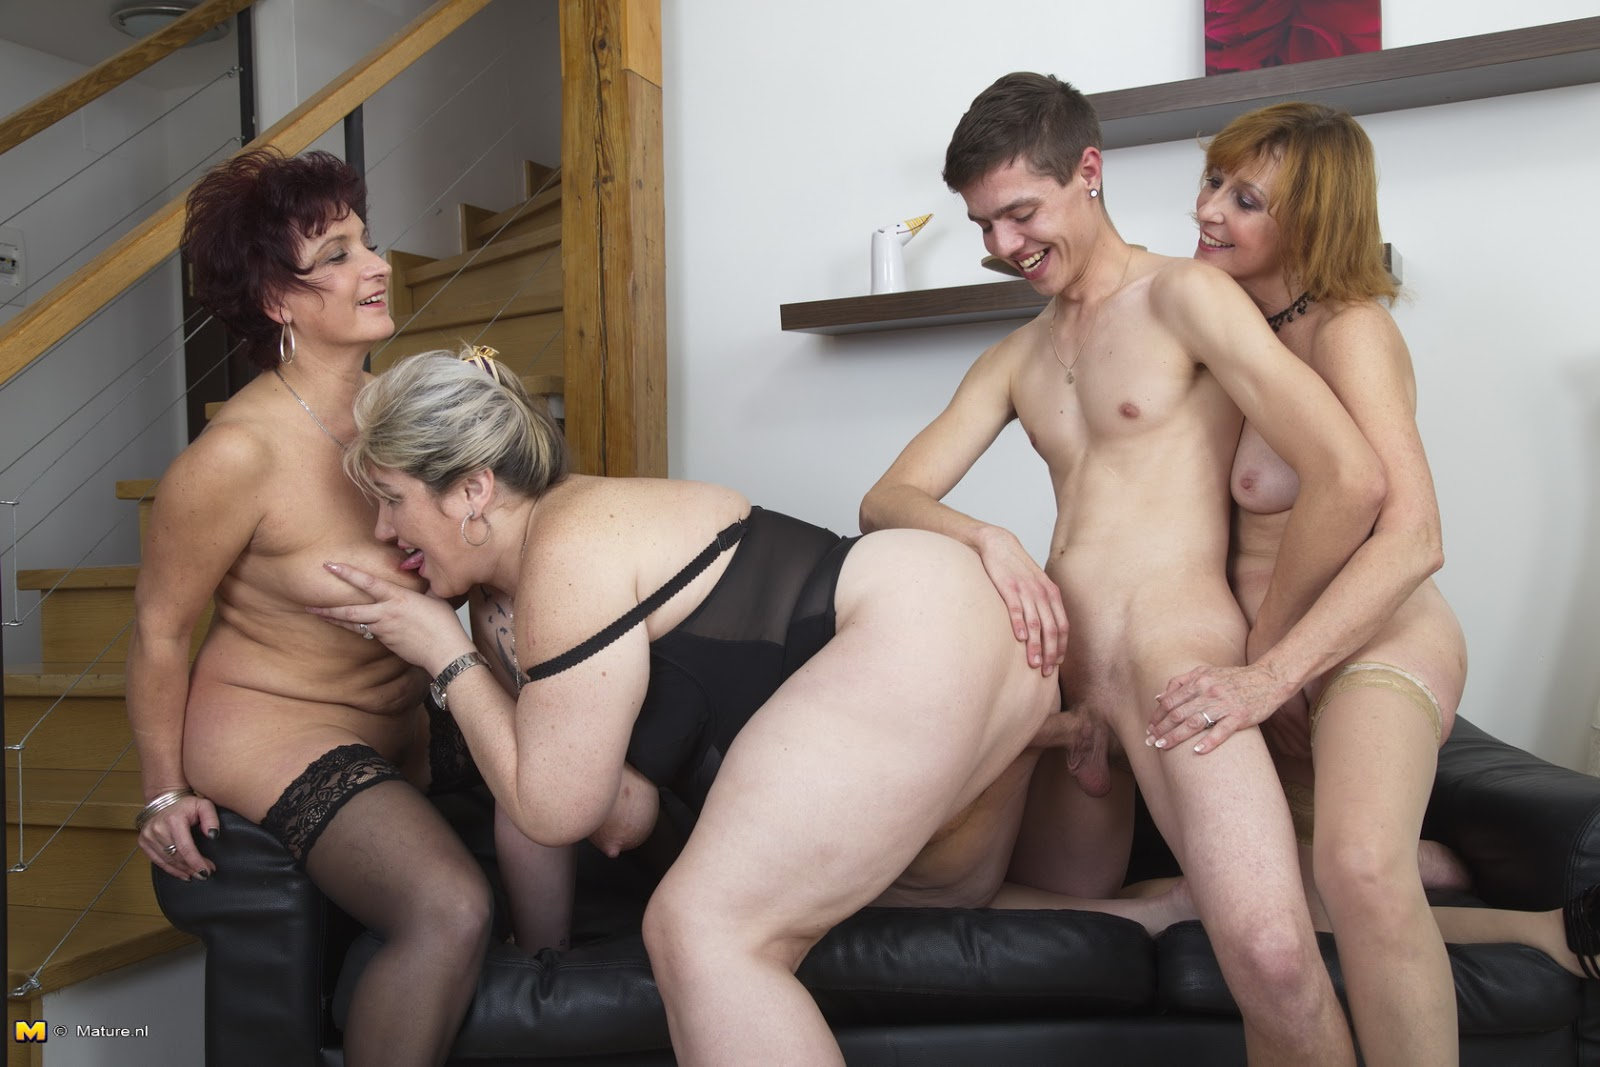 Milf Mom Showing Daugther Erotic Fantasy Hypnosis